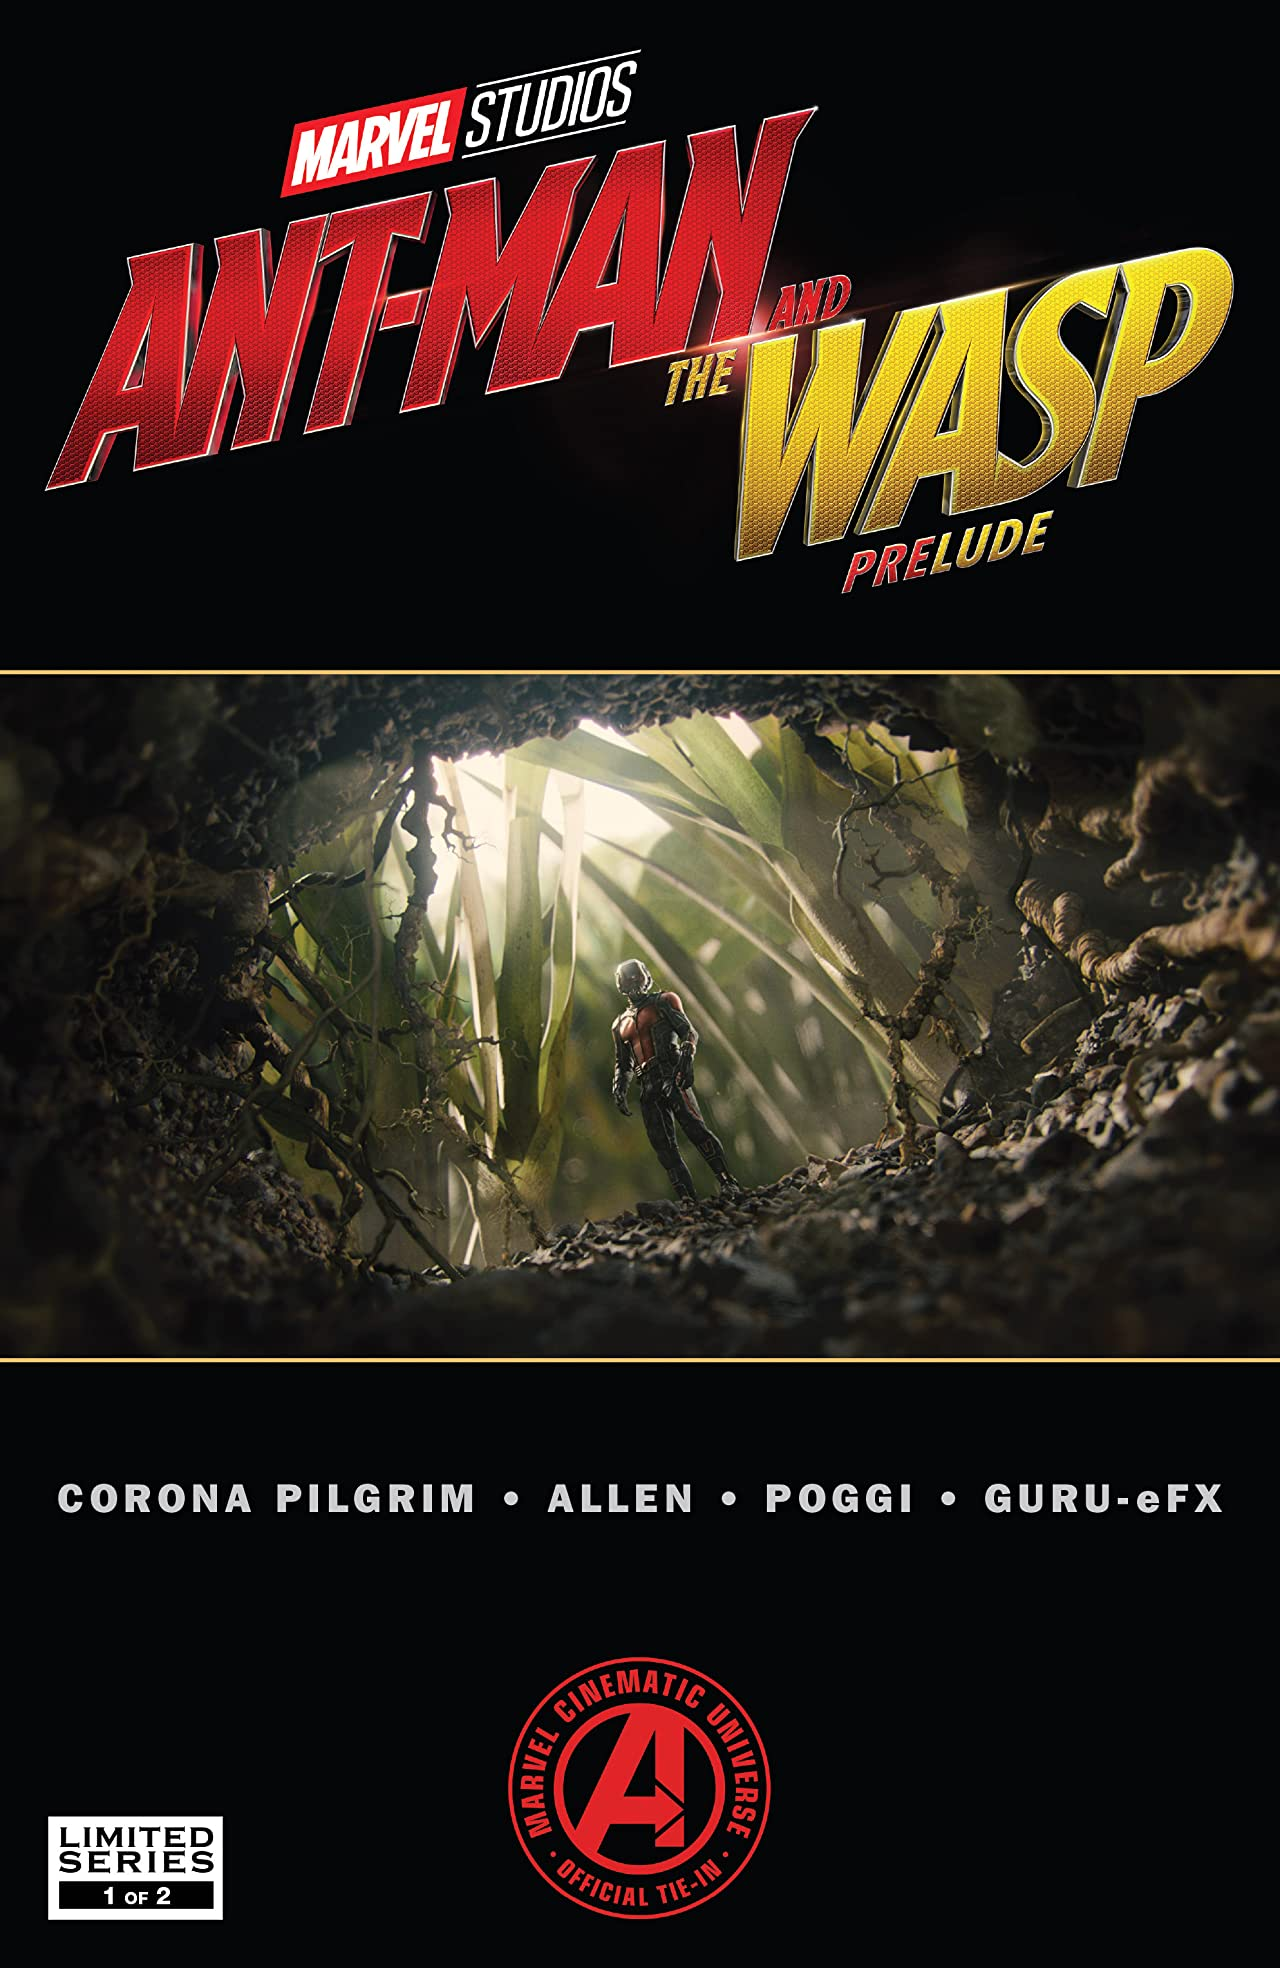 Marvel's Ant-Man and the Wasp Prelude (2018) #1 (of 2)